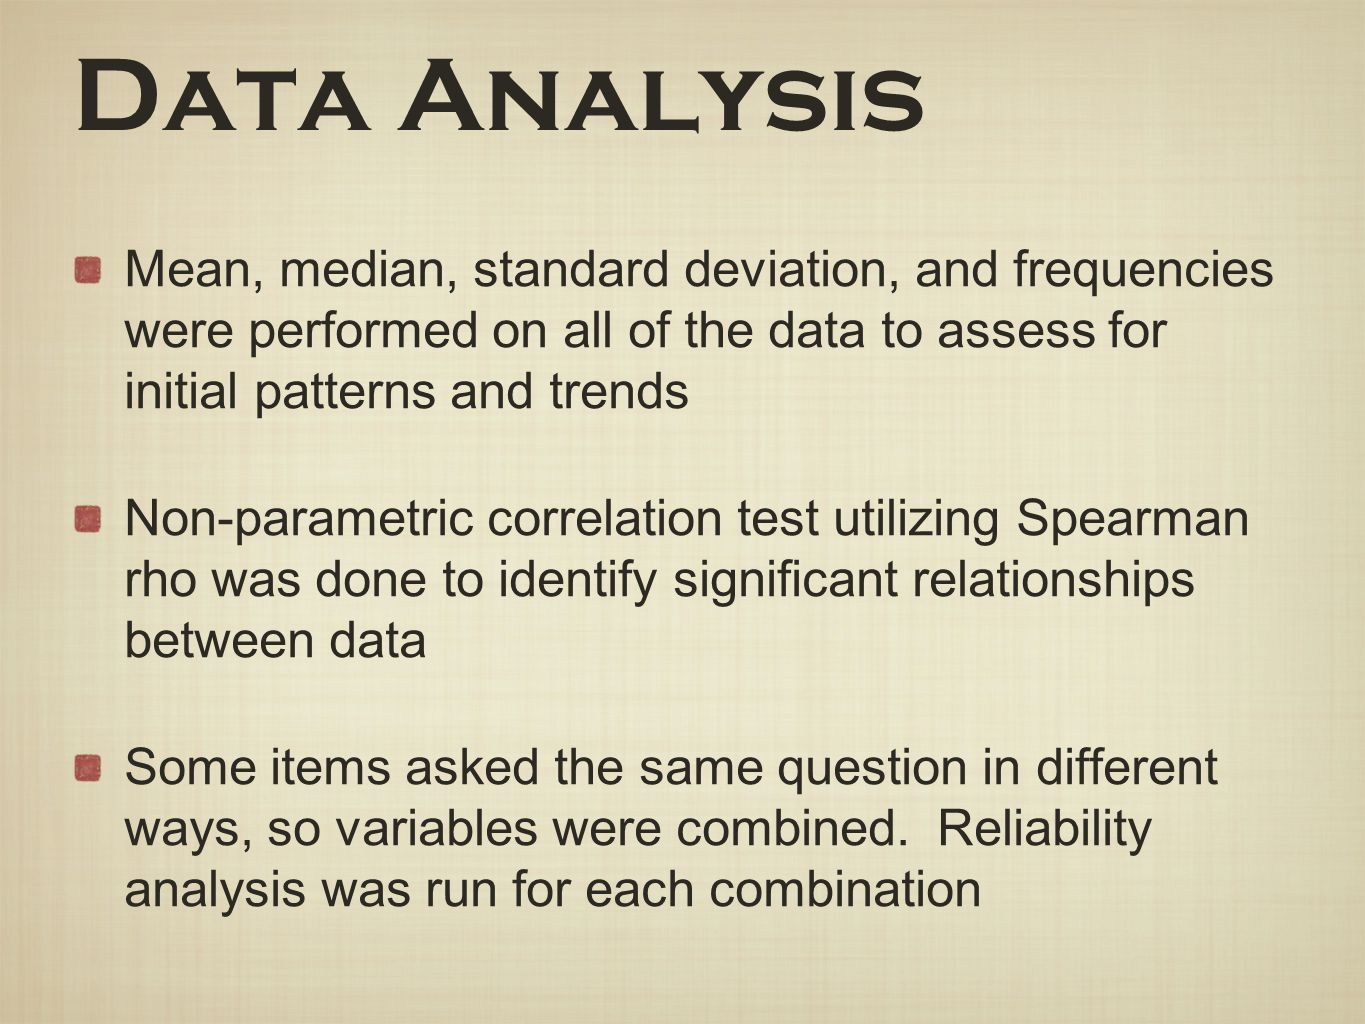 Data Analysis Mean, median, standard deviation, and frequencies were performed on all of the data to assess for initial patterns and trends.